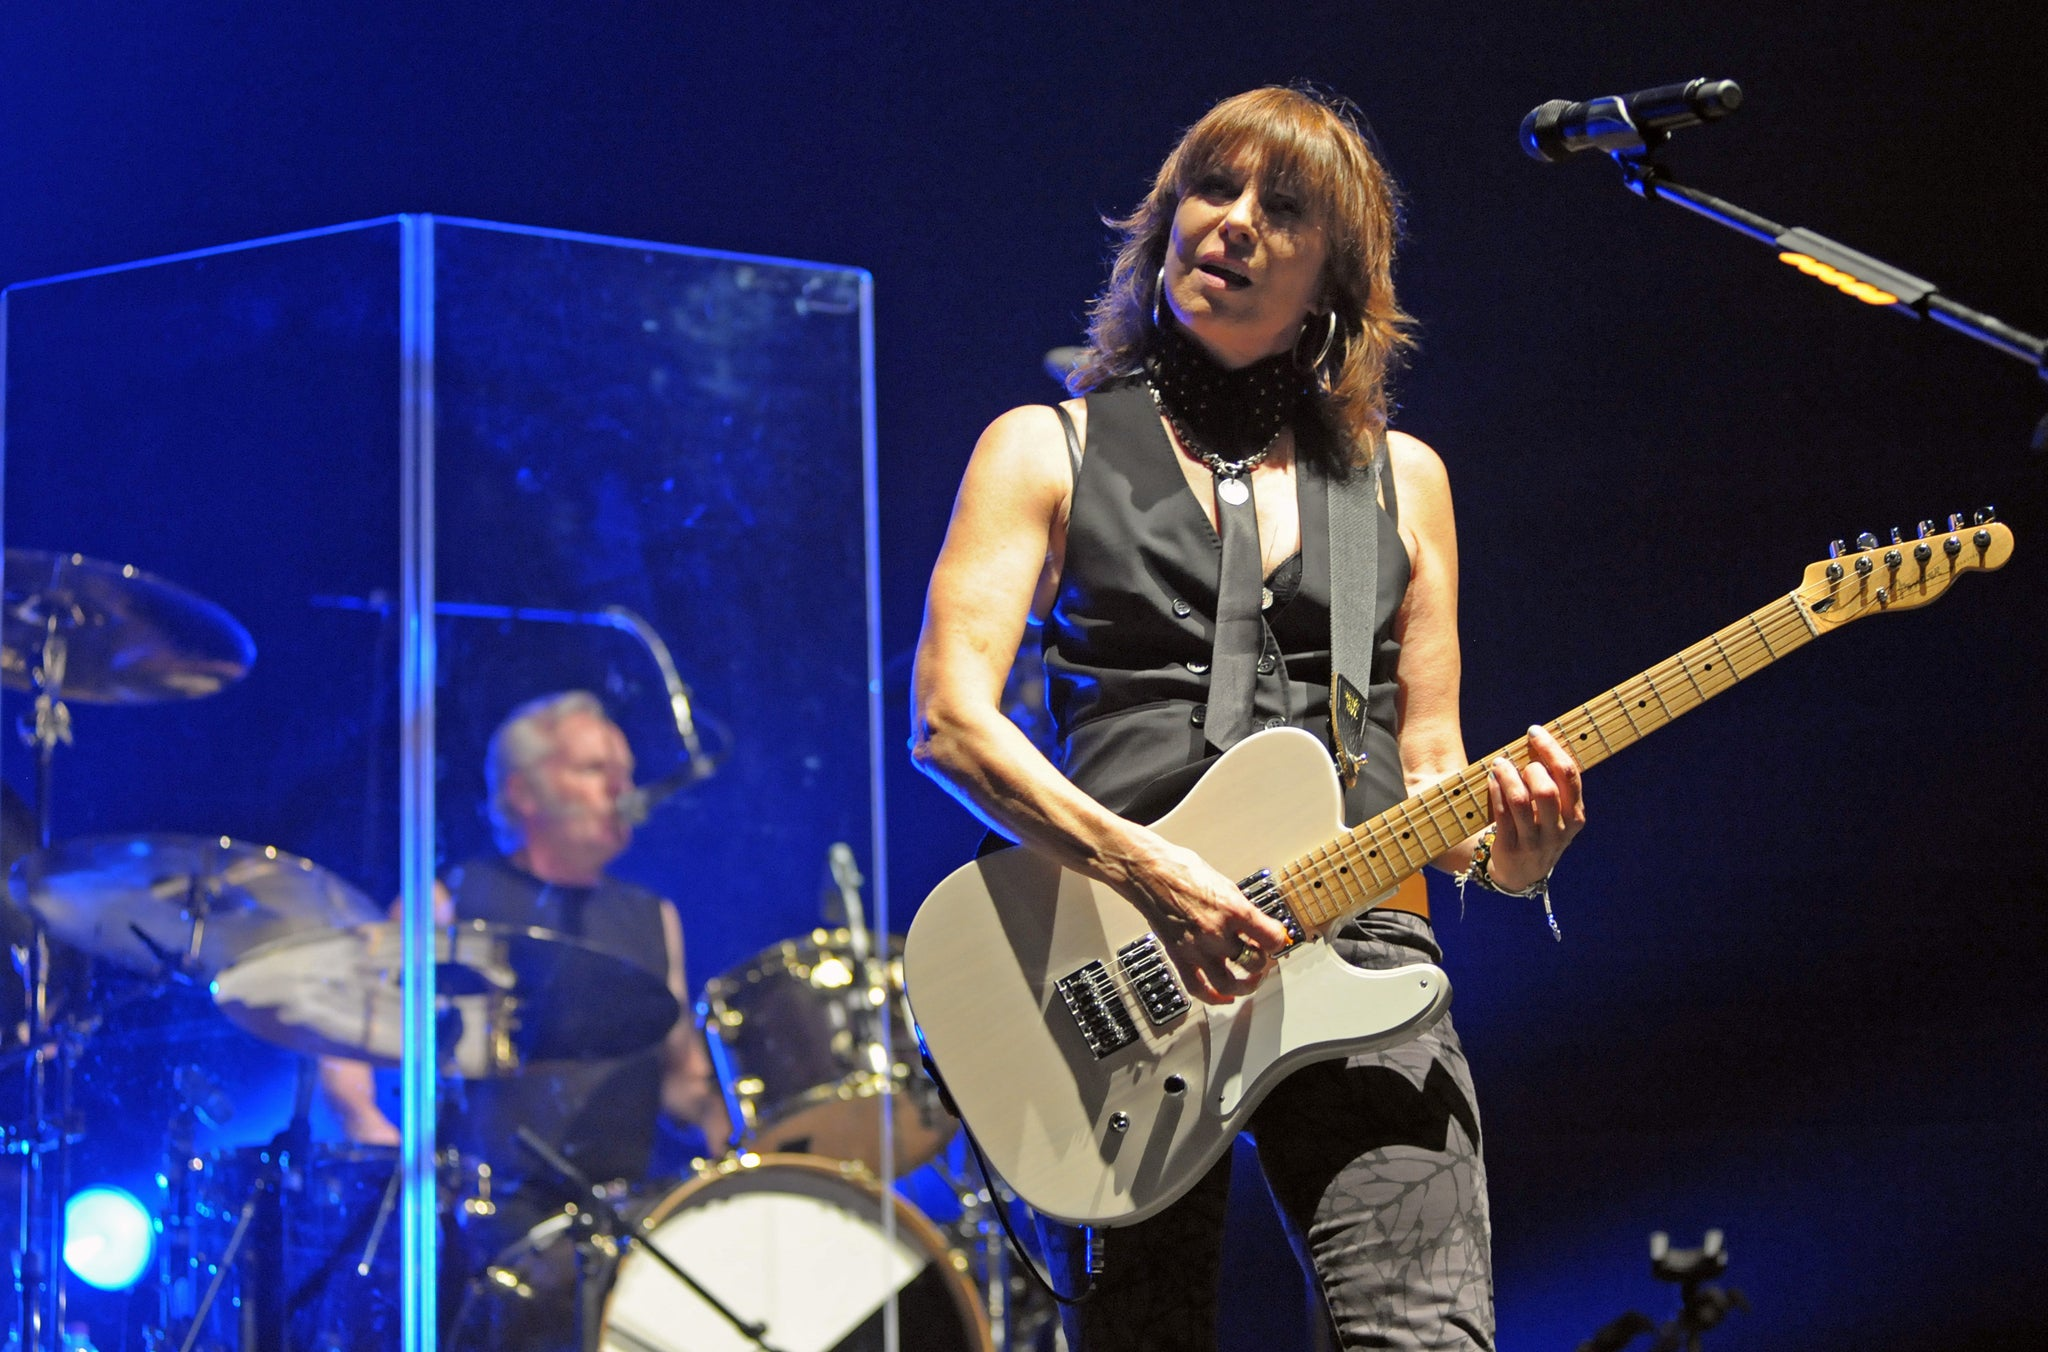 The Pretenders: Their 10 greatest songs, from Kid to Don't Get Me Wrong